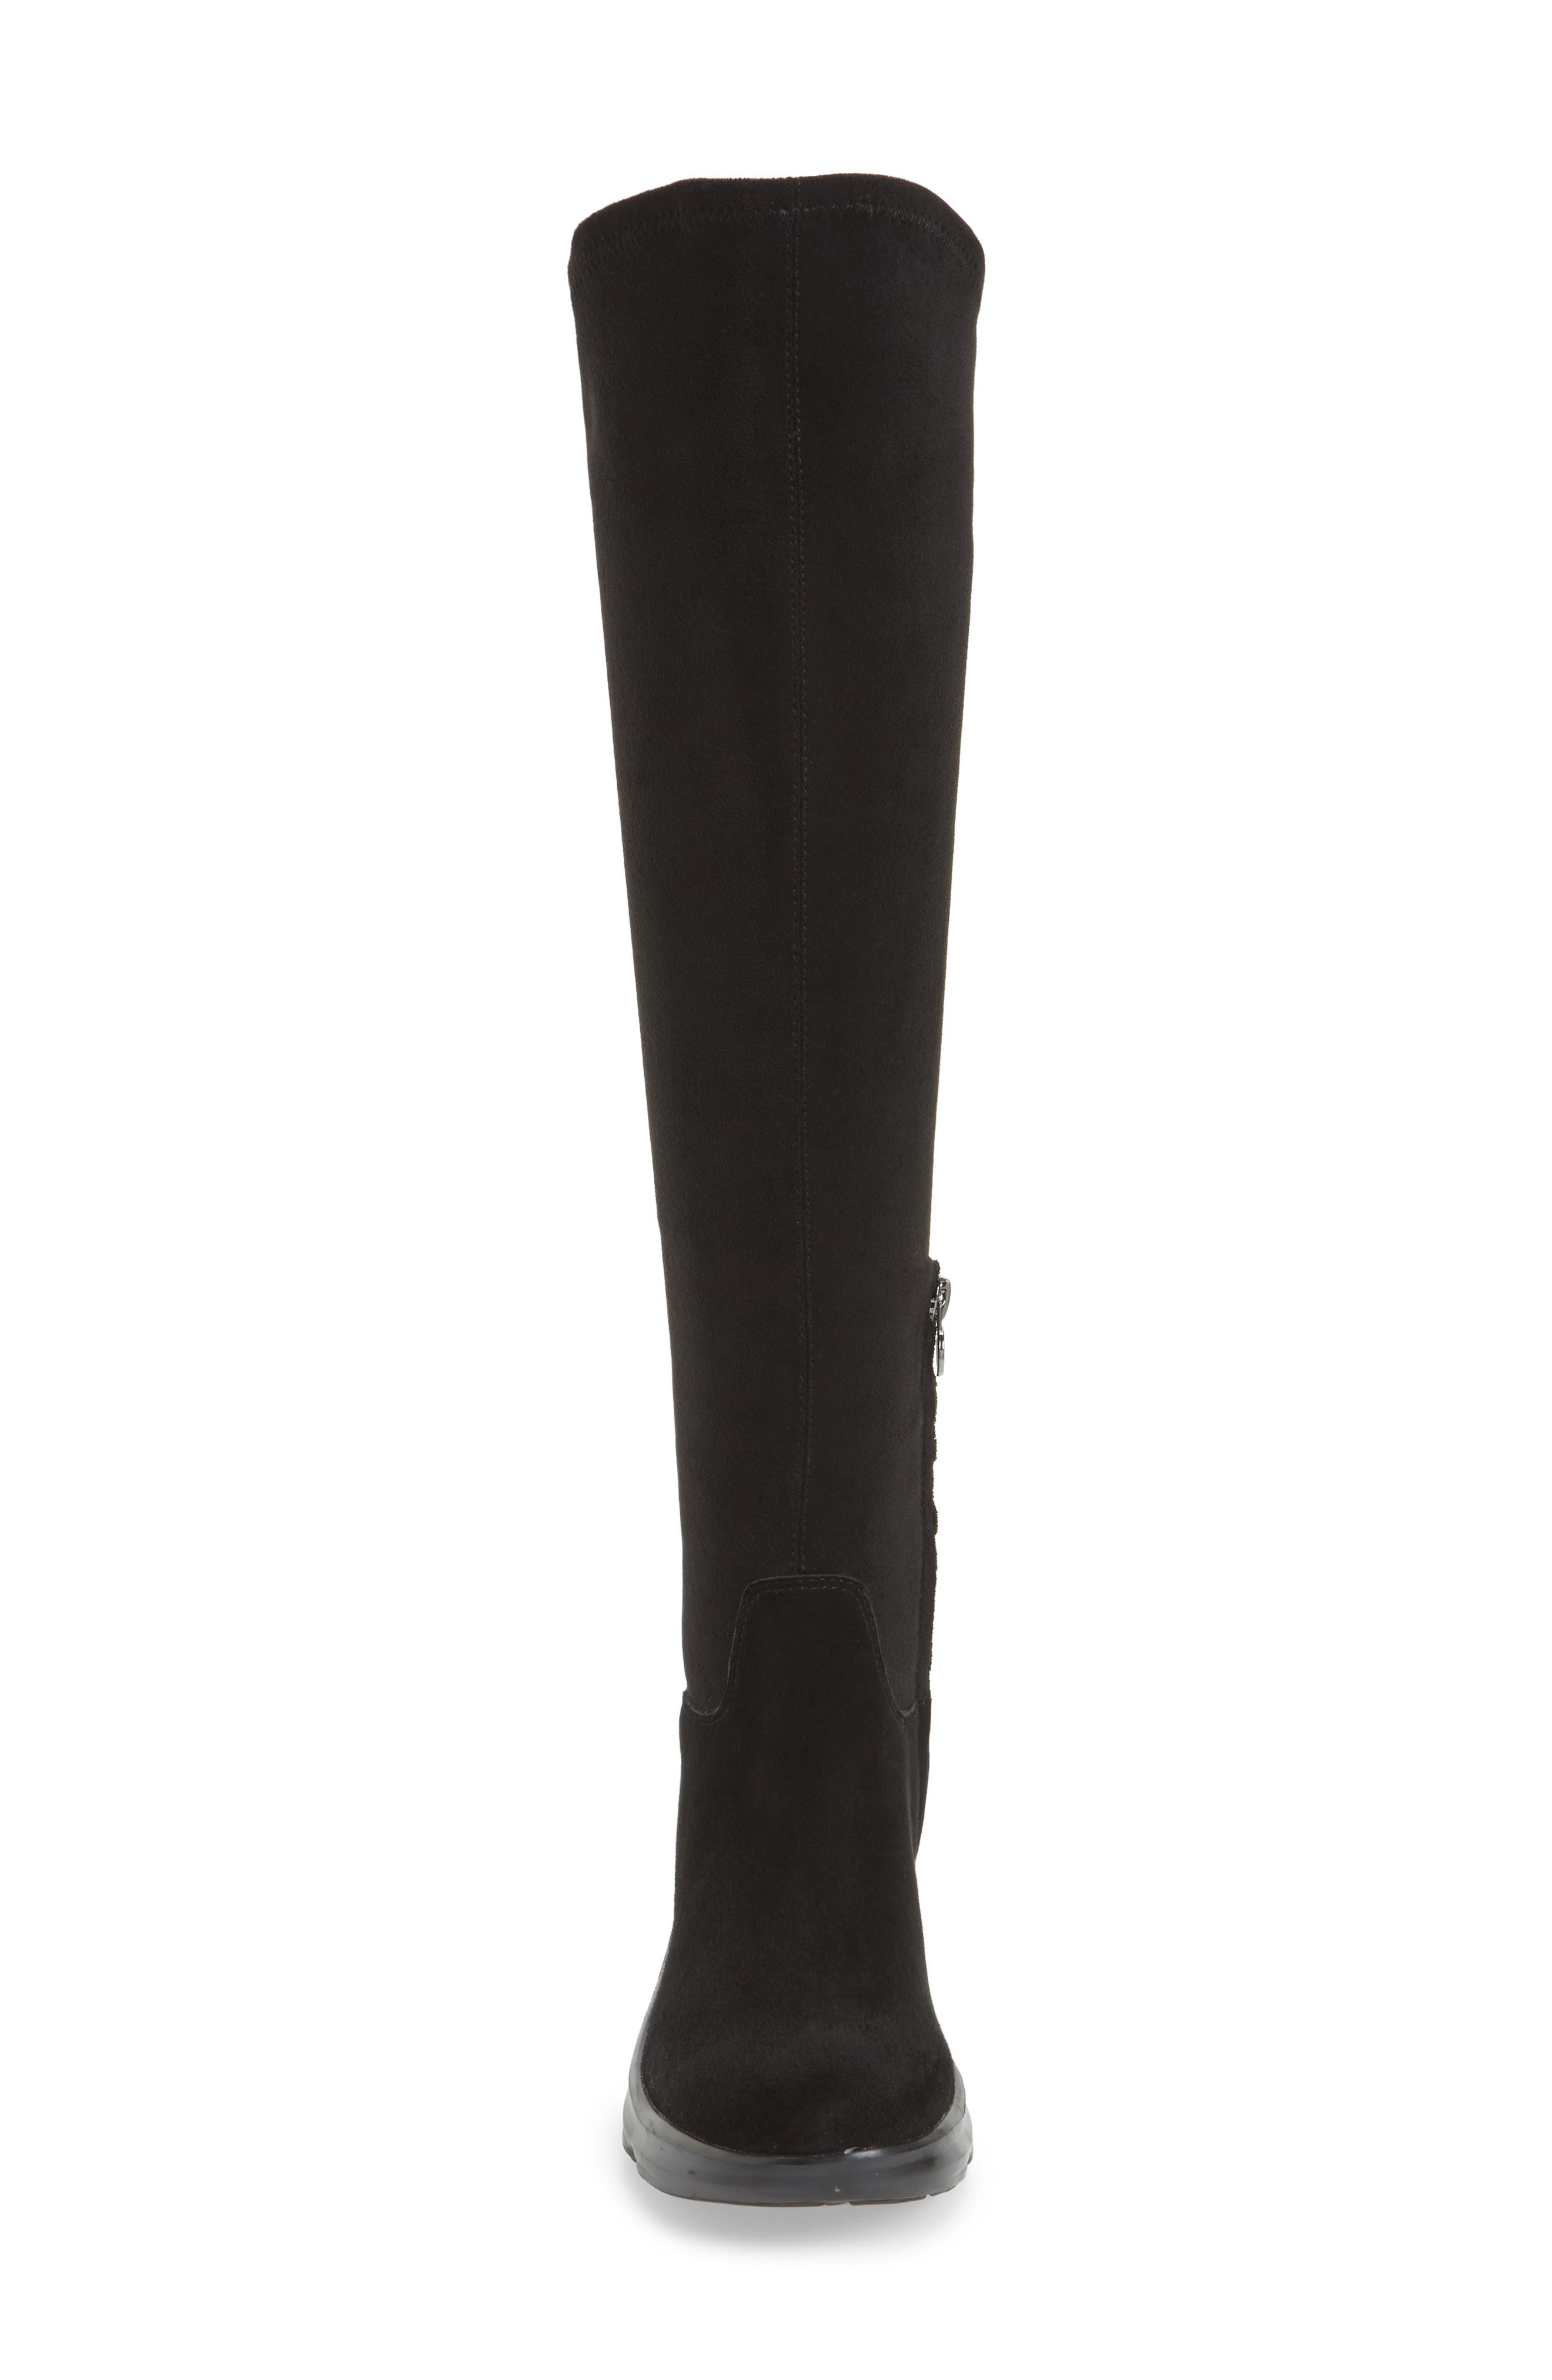 Kendra Over the Knee Water-Resistant Boot,                             Alternate thumbnail 4, color,                             001